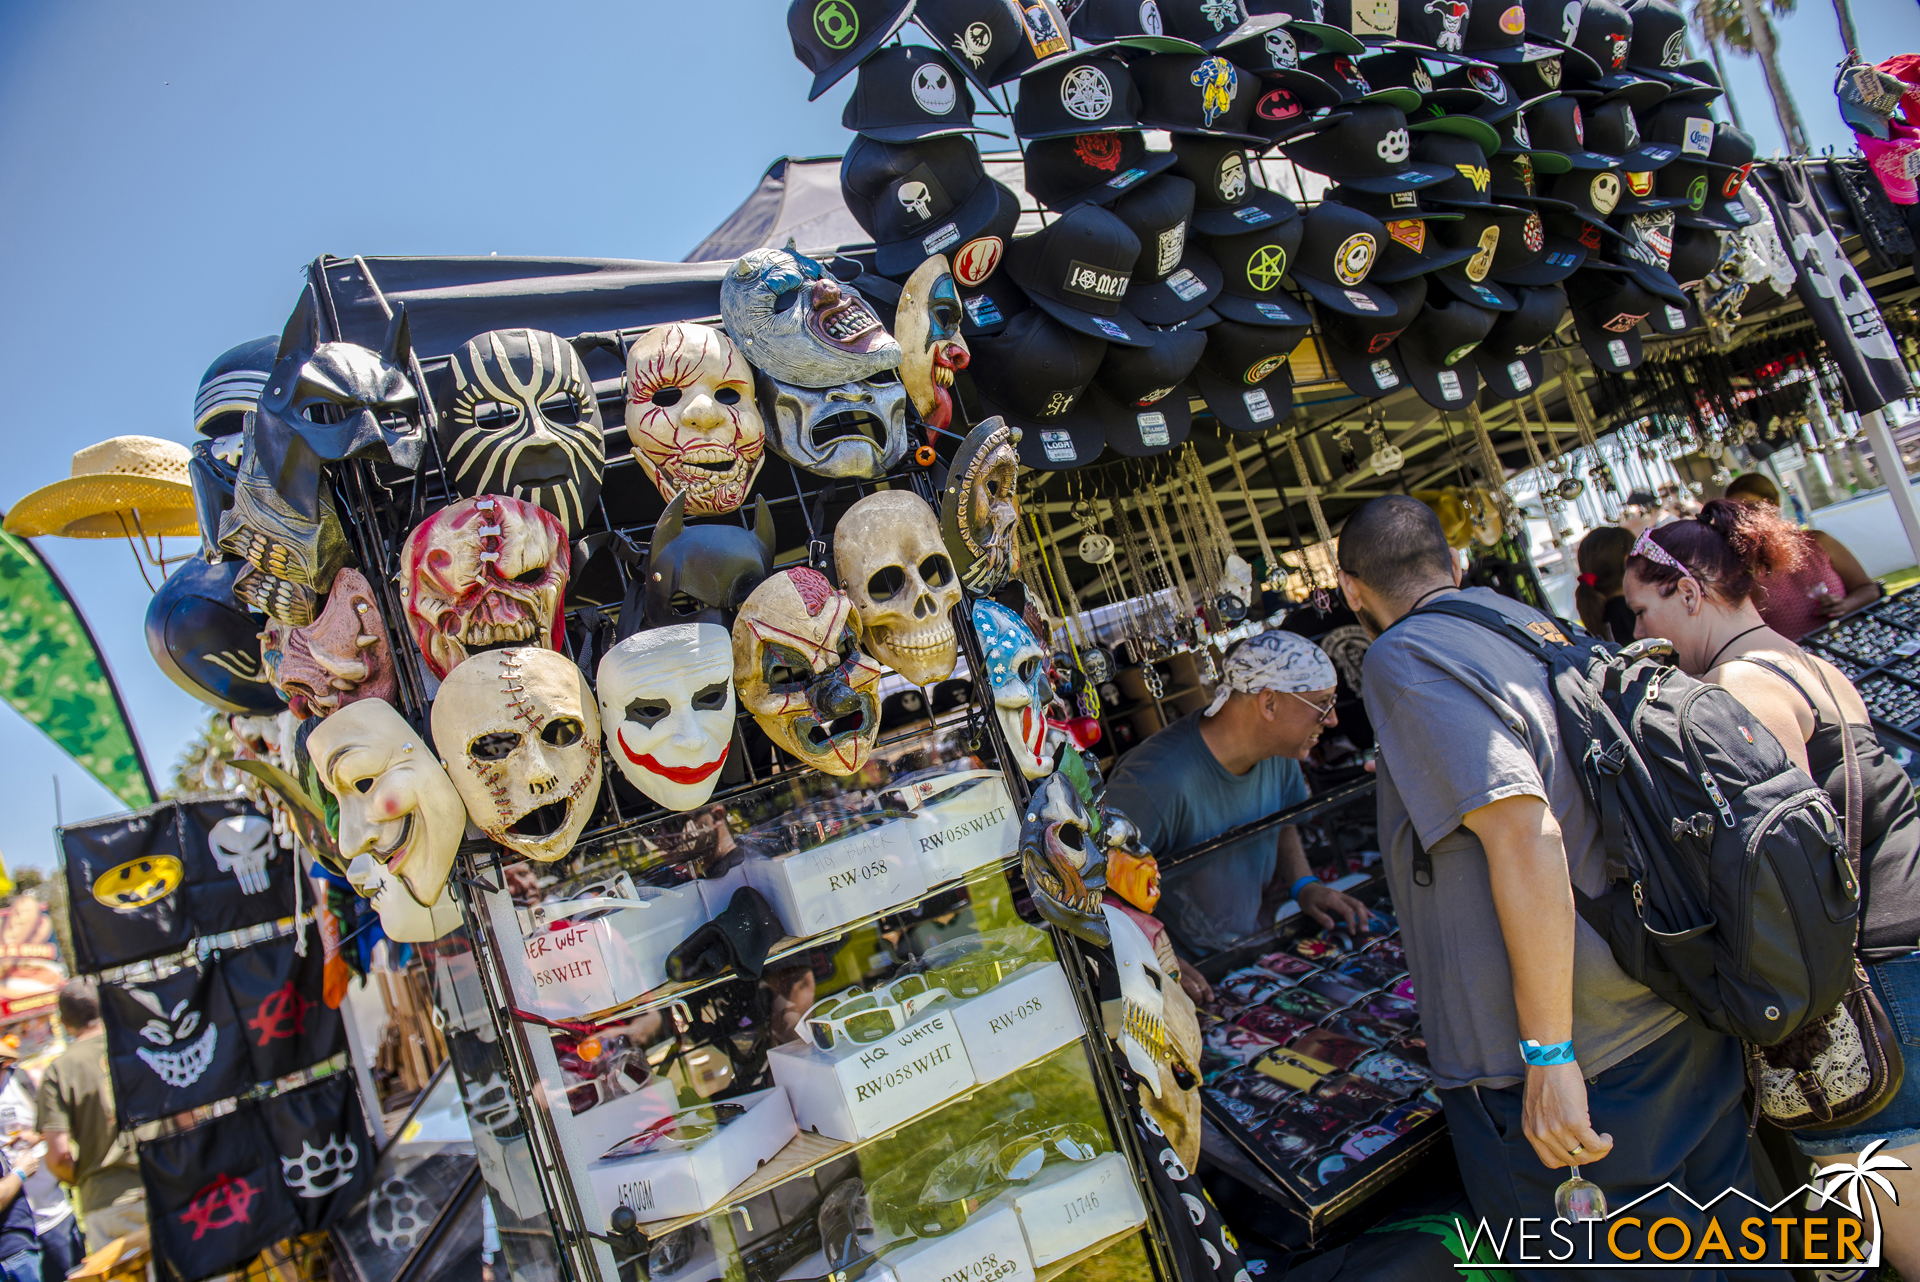 There were also vendors selling various types of merchandise, including masks.